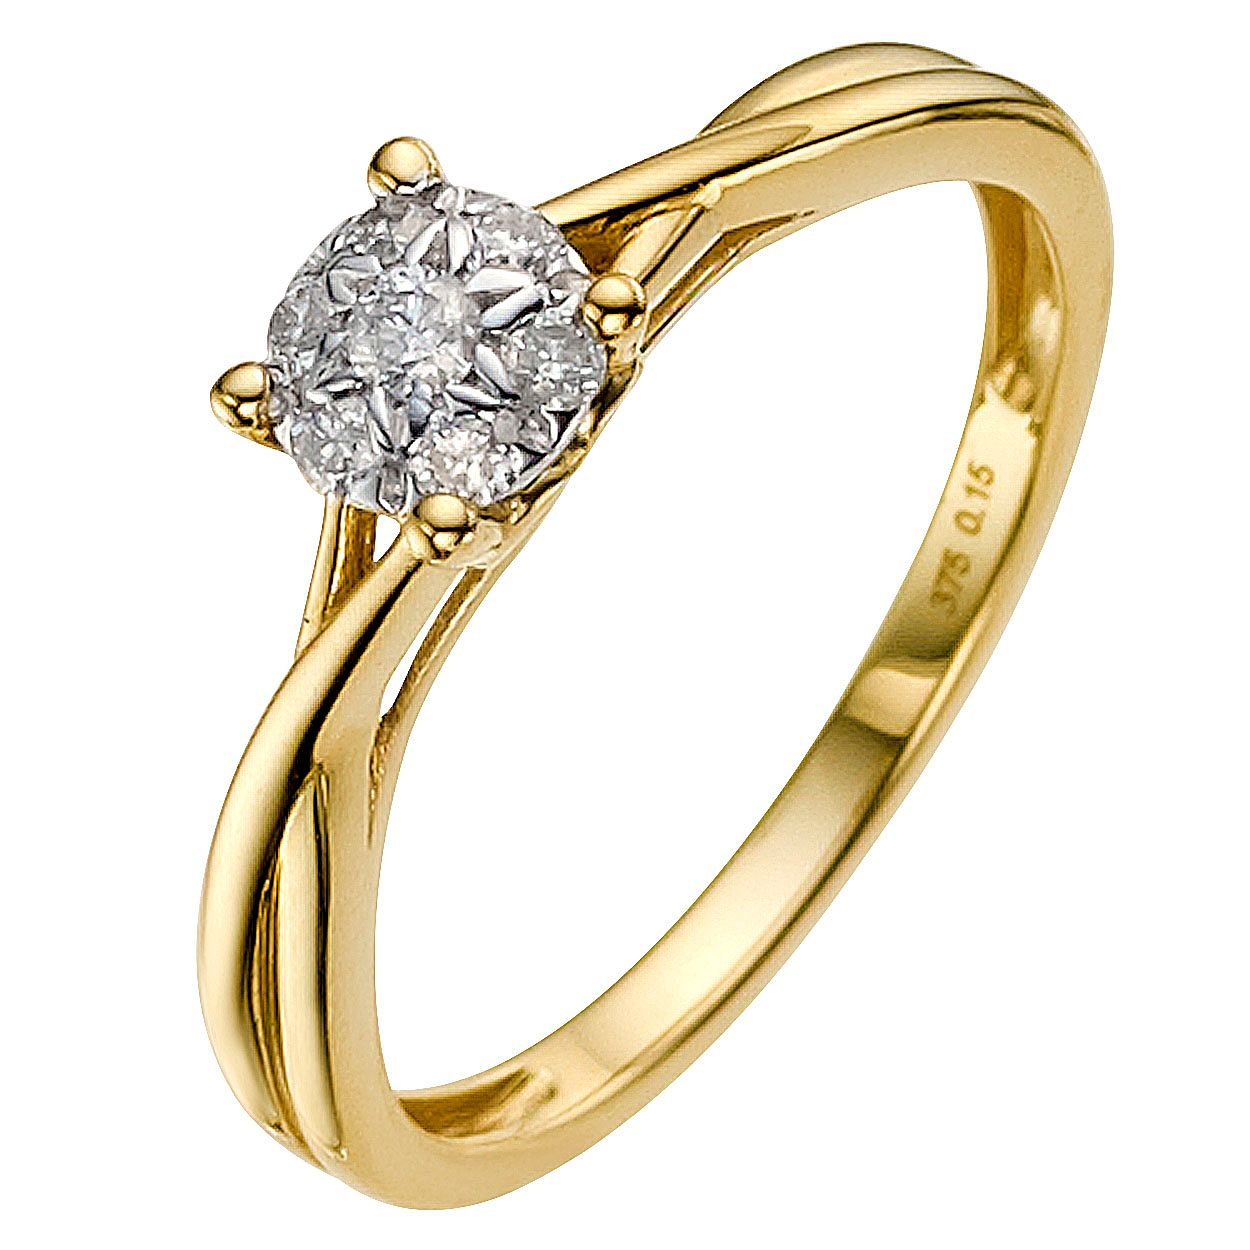 rings cb jewellery int gold latest ct diamond image wiki total file kt ring